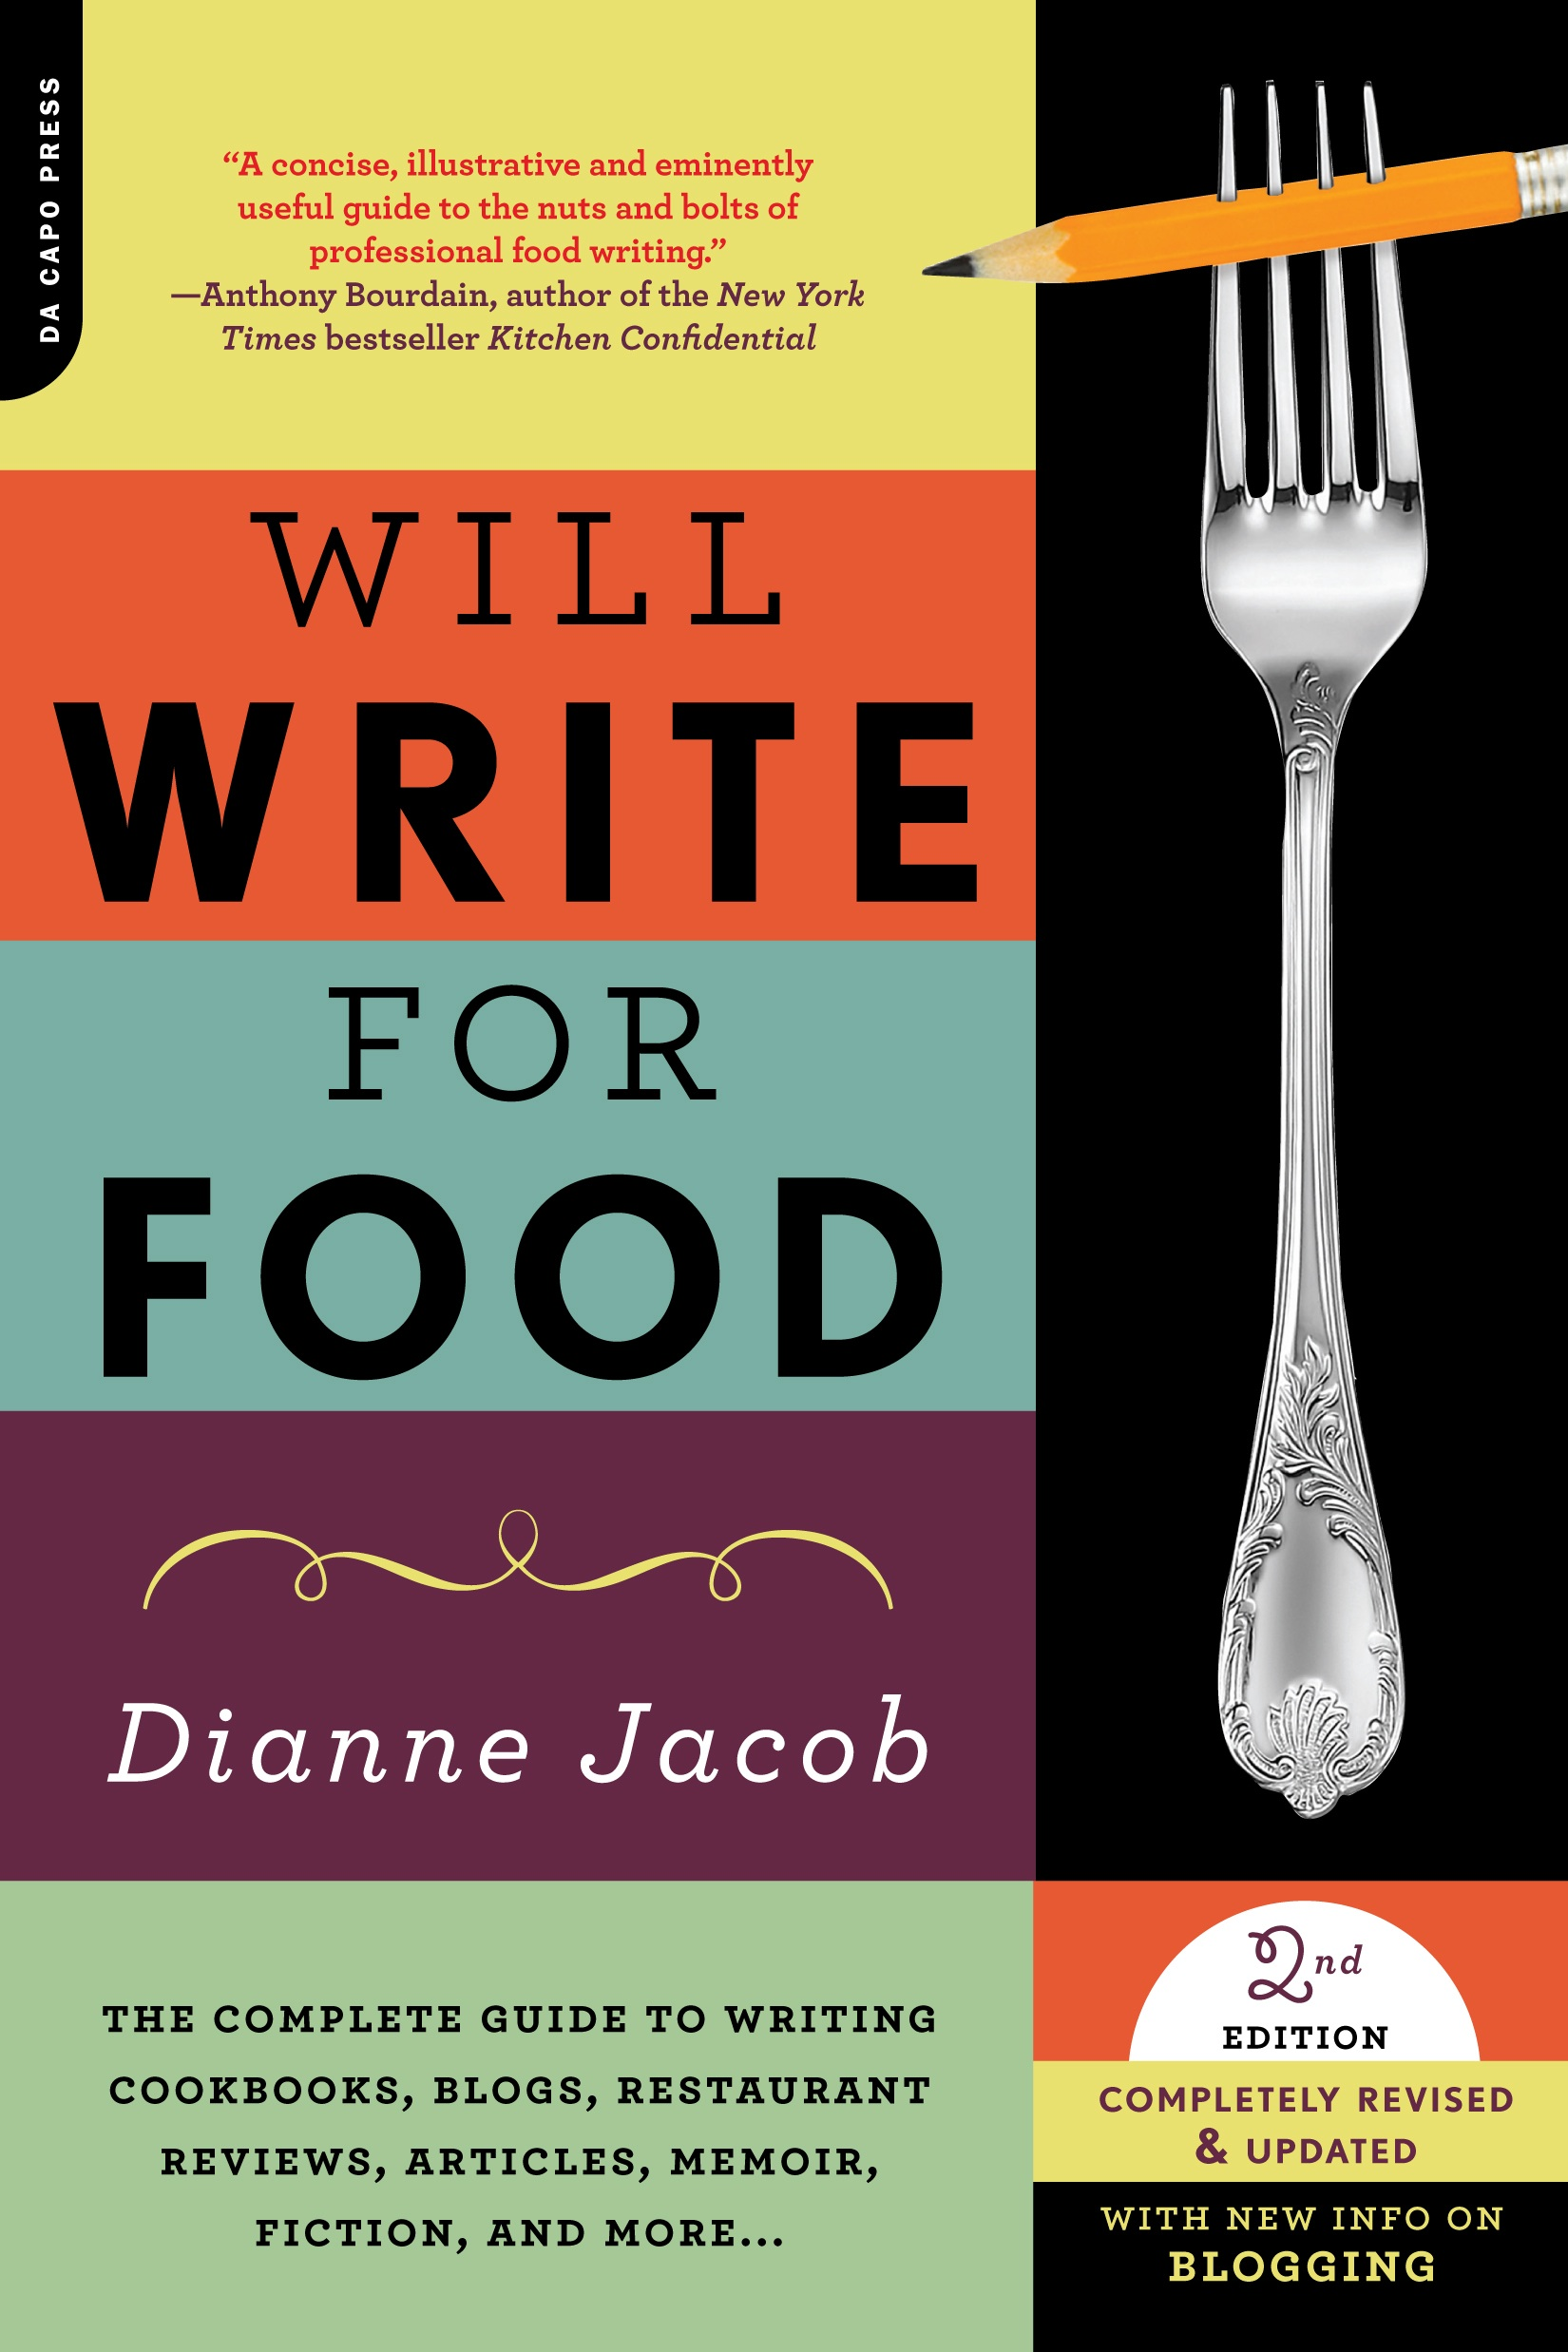 Food Book Cover History : An evolution of five book covers dianne jacob will